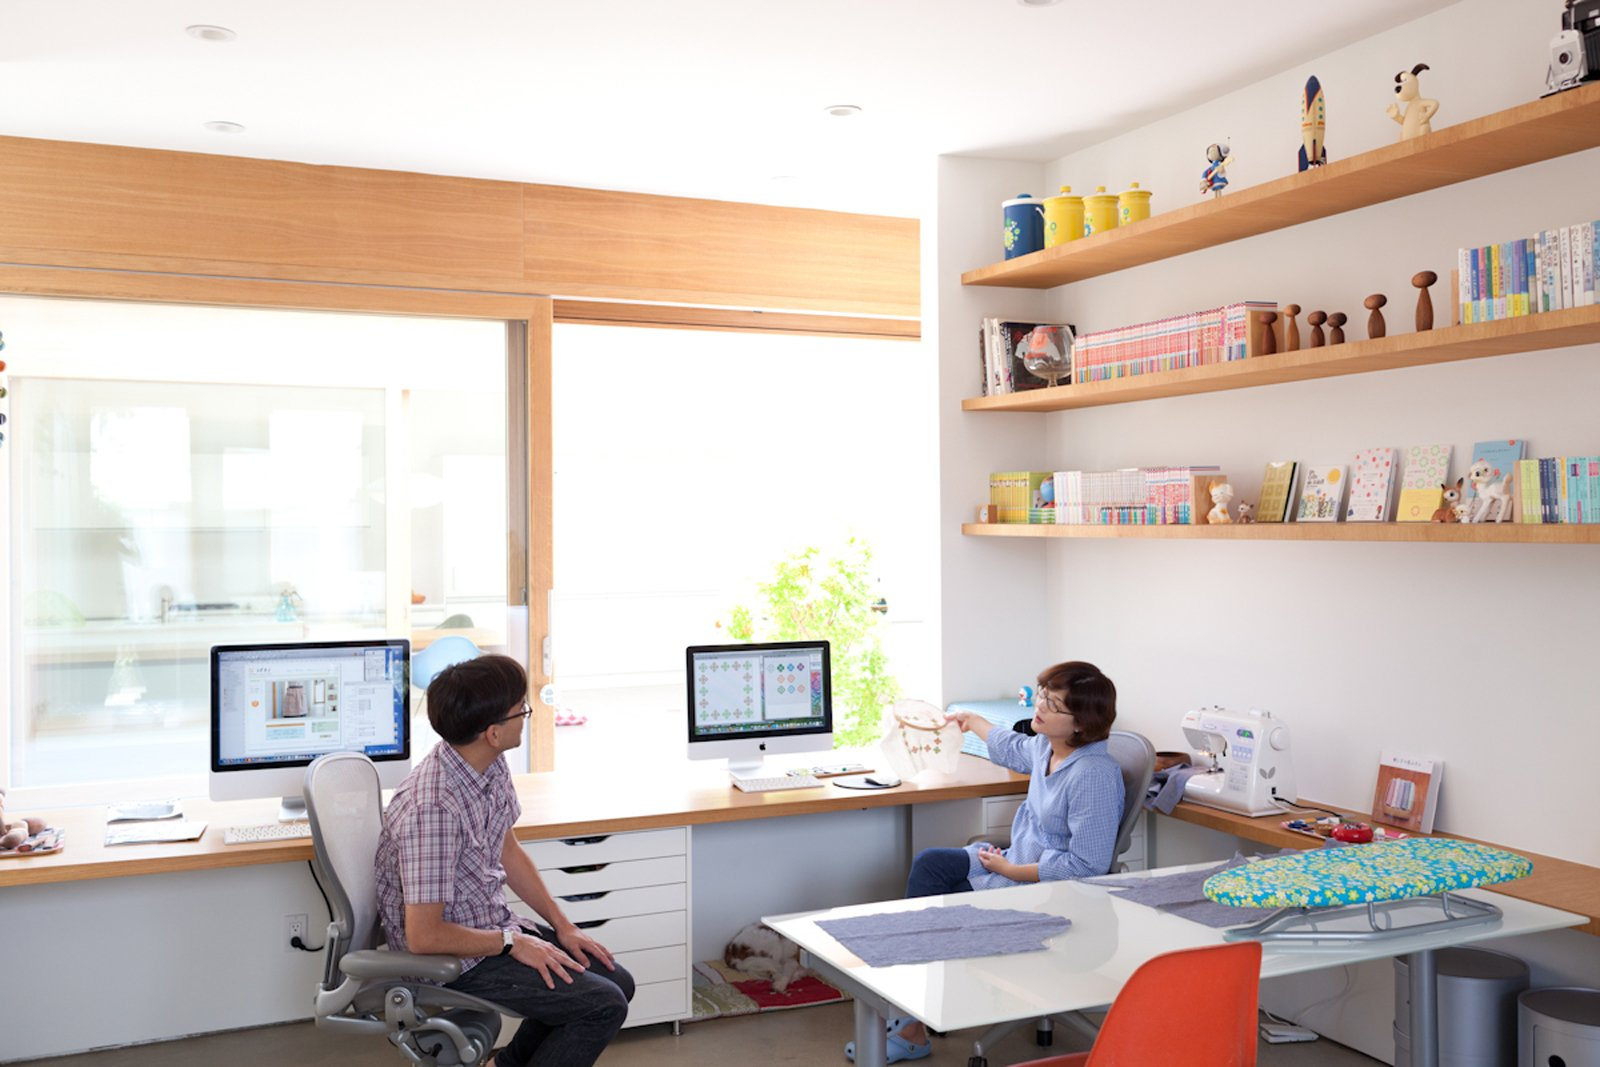 The pair of desks that Paul and Shoko work at in the office space look directly onto the courtyard. The concept for the design was to be able to see the sky from your seat at the desk.  Home Offices and Workspaces We Love from Looking Inward